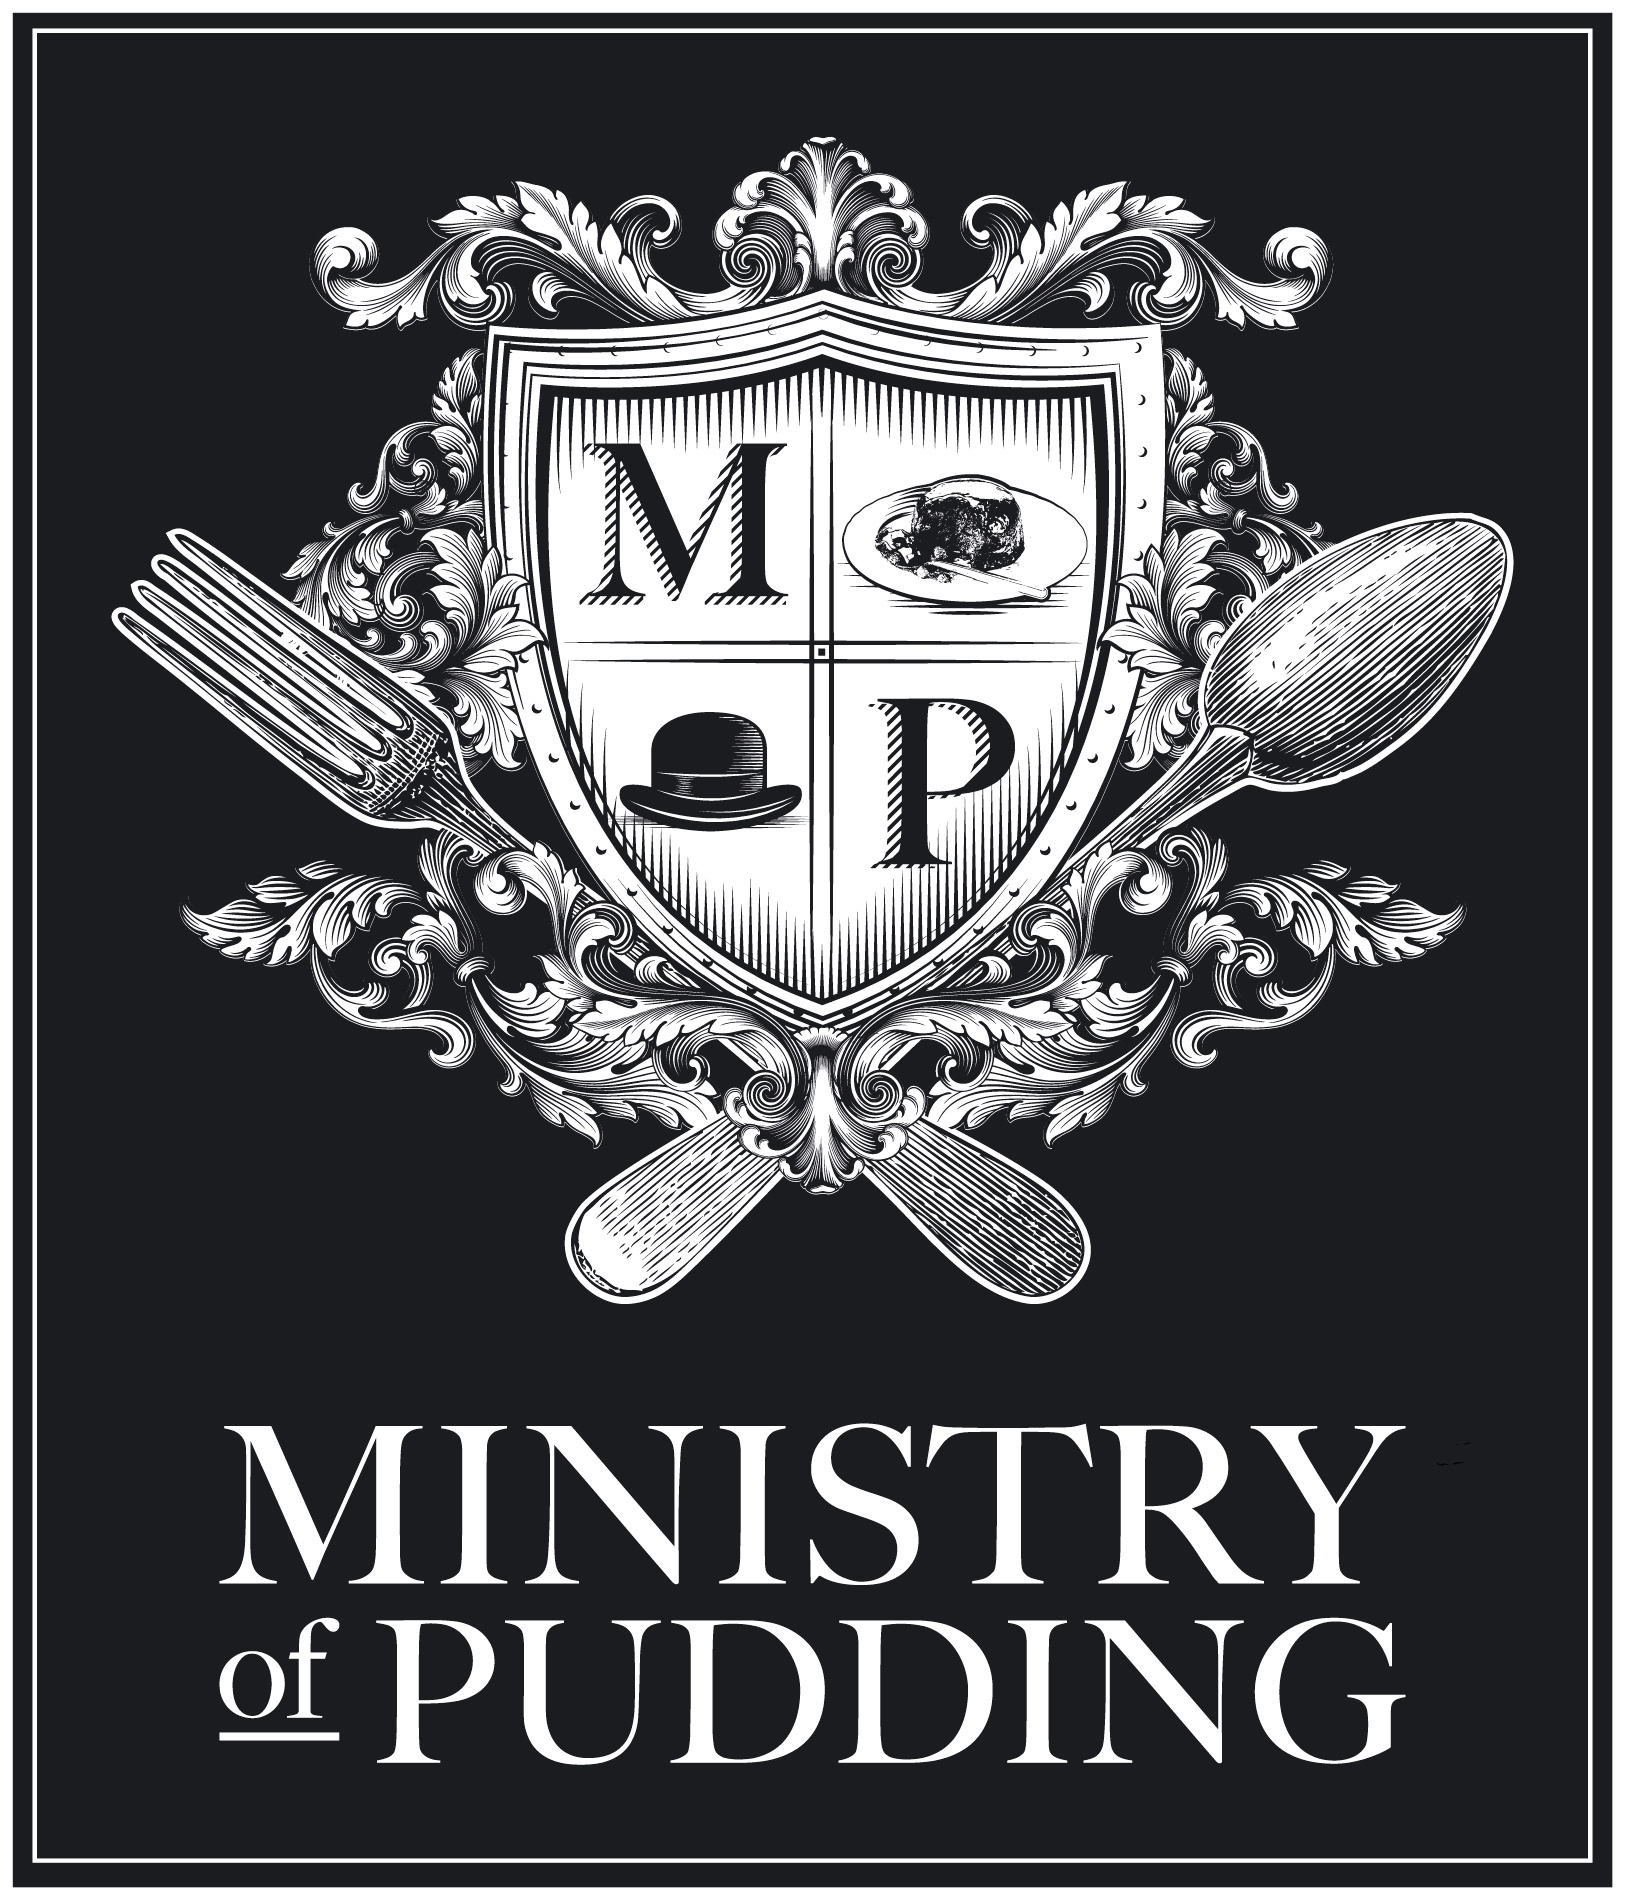 Ministry of Pudding